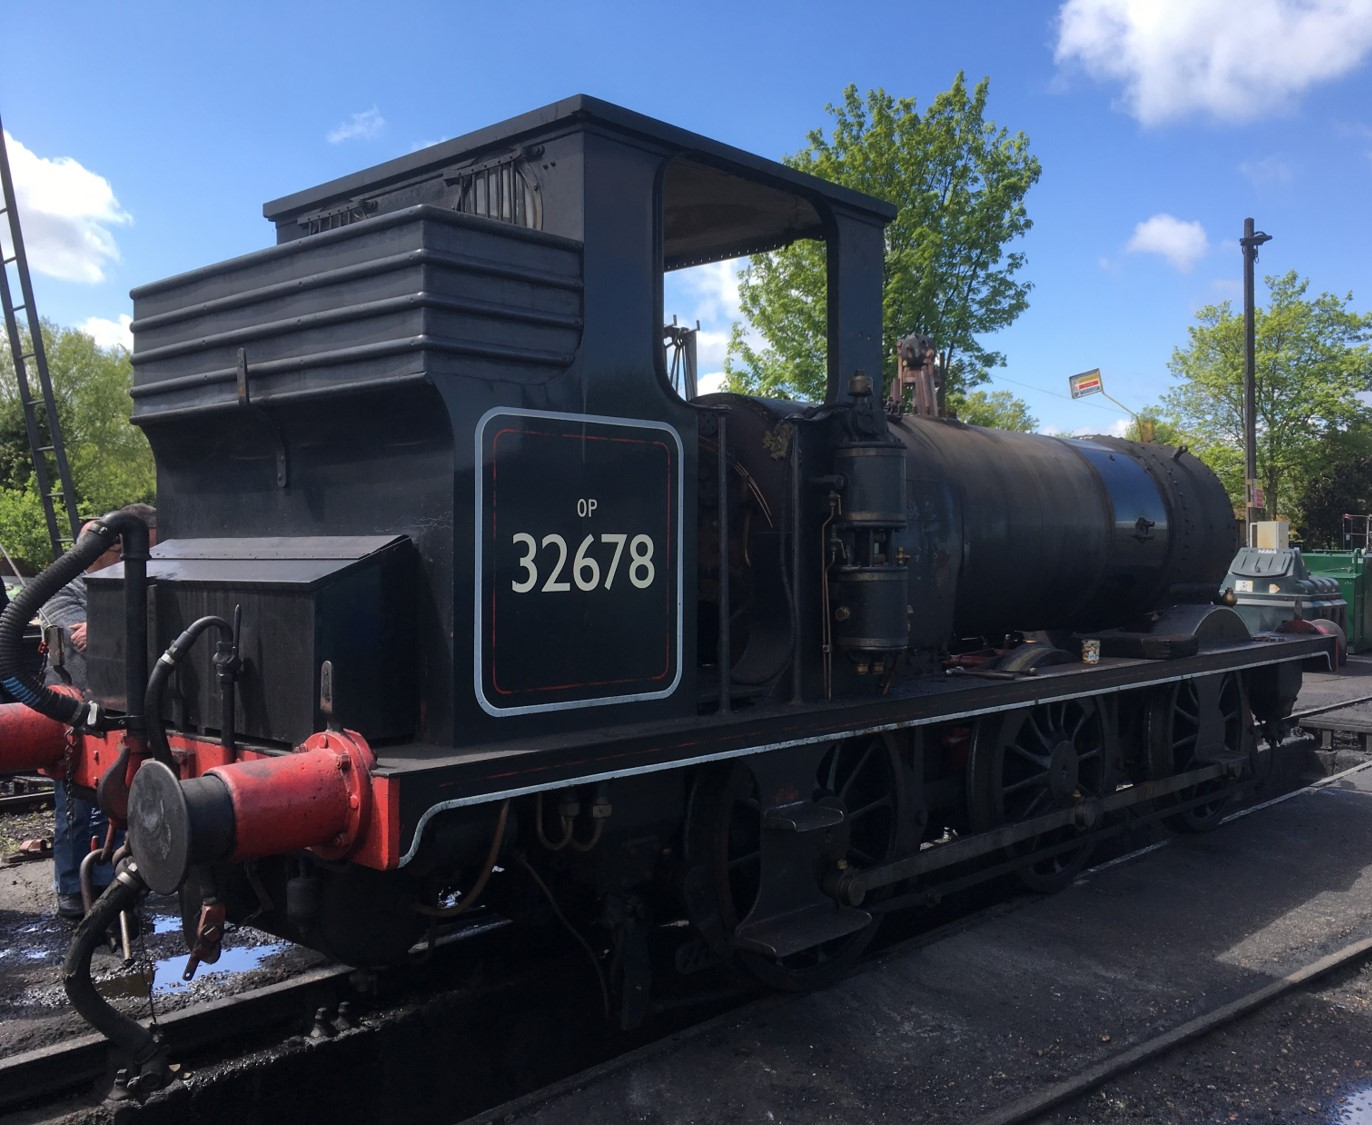 2678 largely dismantled at Rolvenden on 11 May 2019  © Graham Hukins